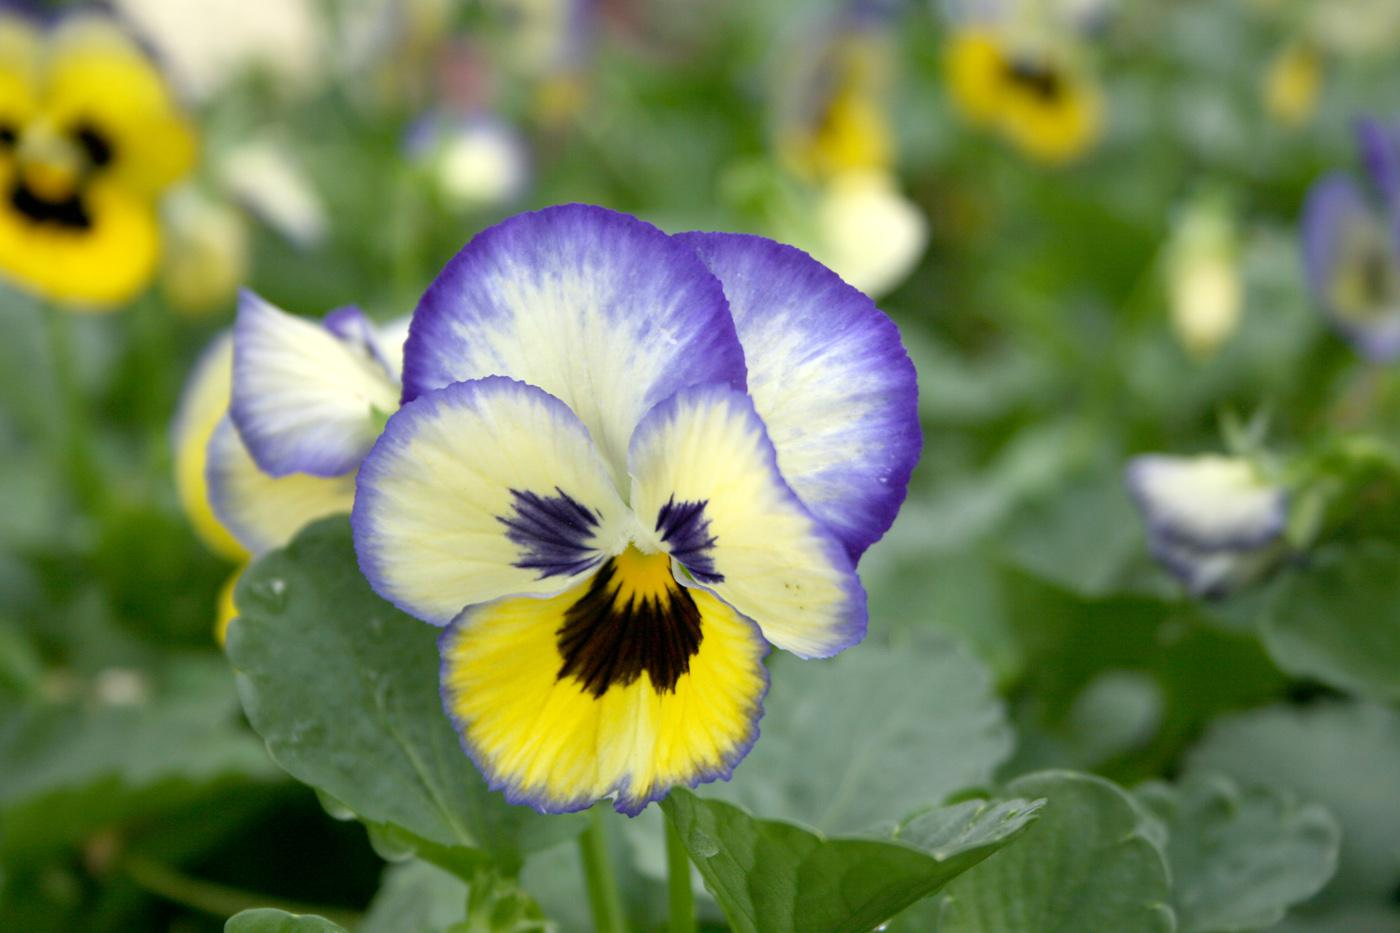 Pansies come in a virtual rainbow of colors, ranging from yellow and purple to blue and white.